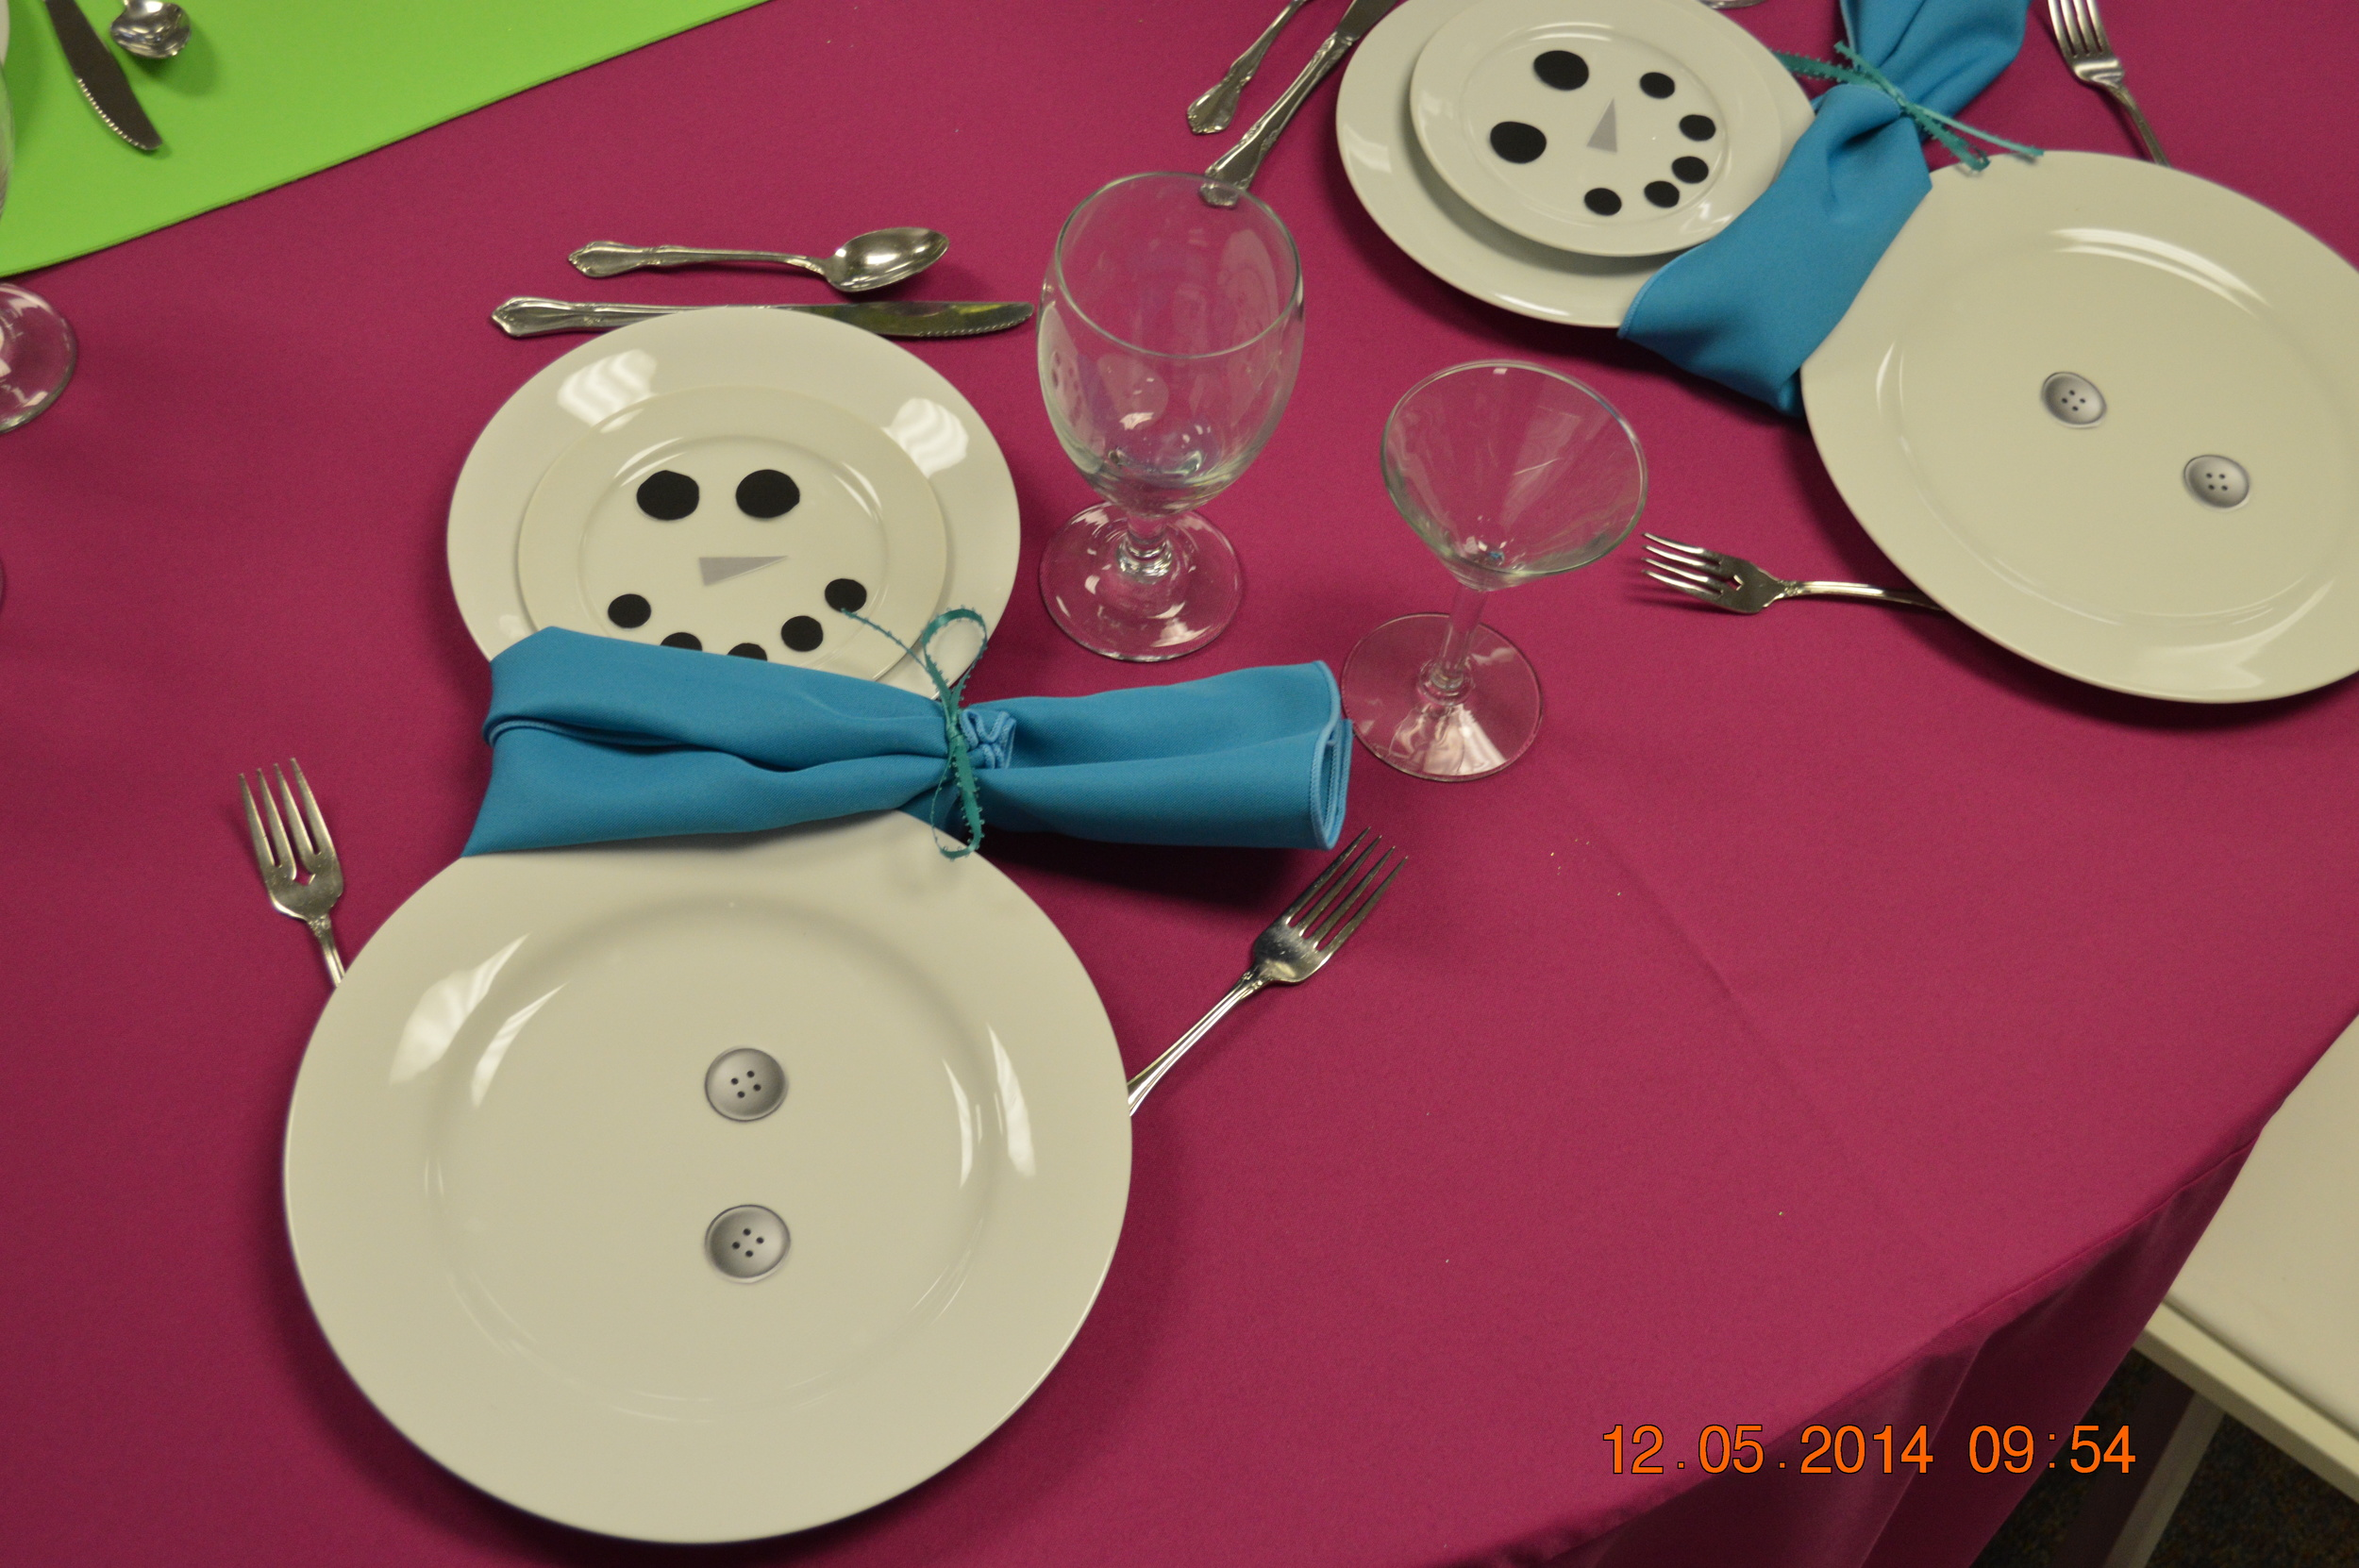 What you'll need: Dinner plate, Sal./Des. plate, B&B plate, Sal. fork, Dinner fork, dinner knife, teaspoon, napkin (scarf), Paper (buttons, eyes, mouth, nose) water goblet, martini glass